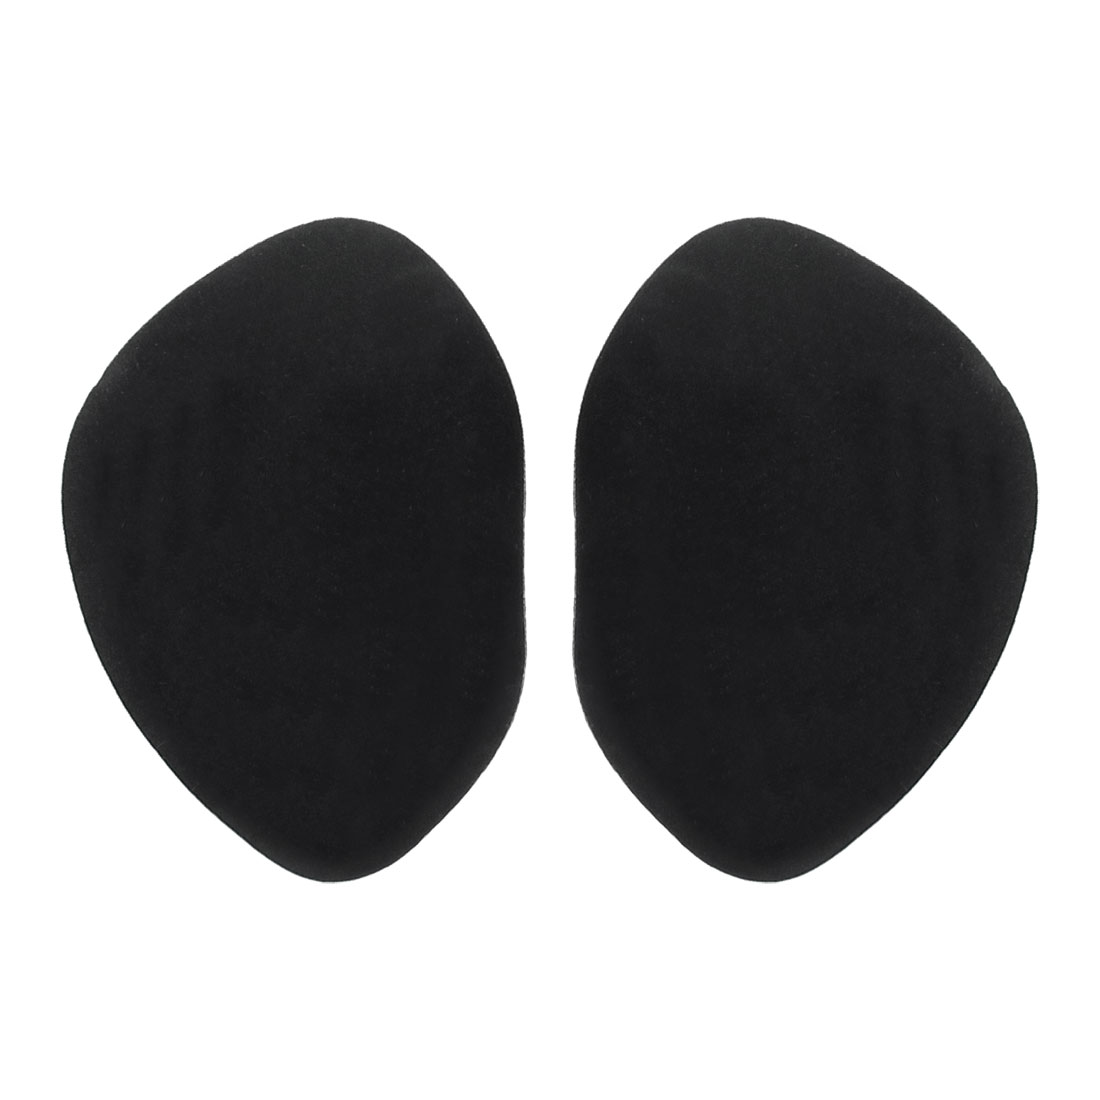 Pair High Heels Shoes Pure Adhesive Gel Front Insloes Pads Black